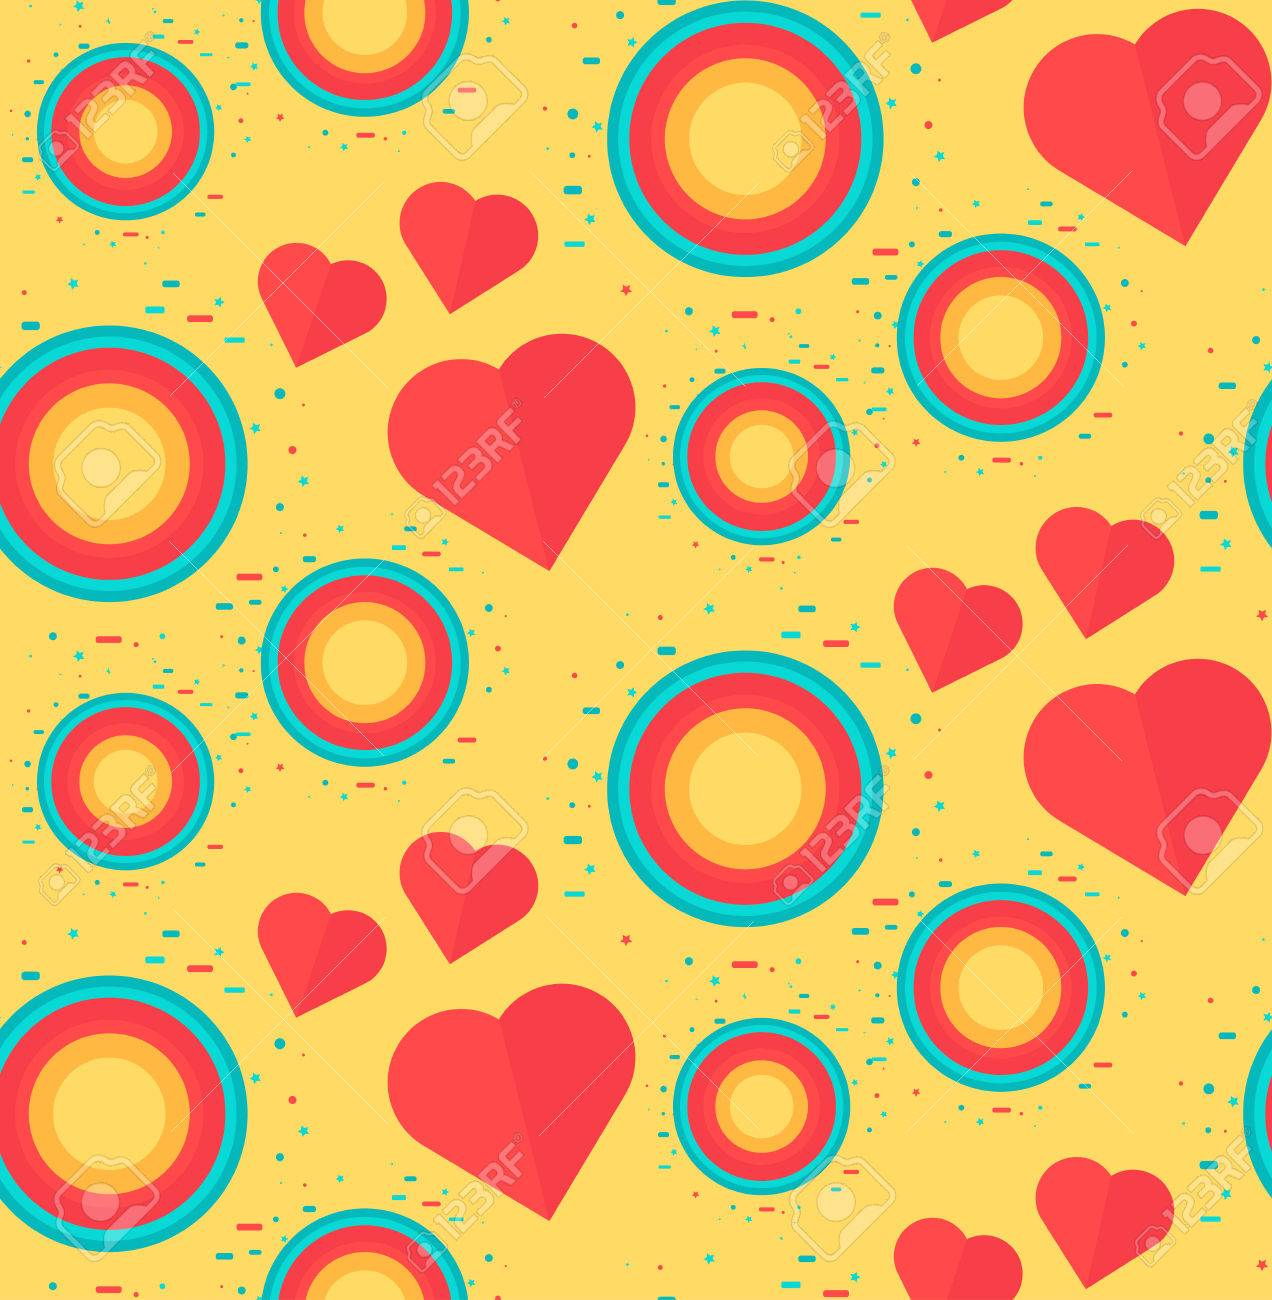 Romantic vector seamless background greeting card wallpaper vector art - Vector Vintage Seamless Romantic Pattern For Wrap Print Fabric Textile Greeting Card Ornament With Pink Or Red Heart Circle For Cloth Wallpaper